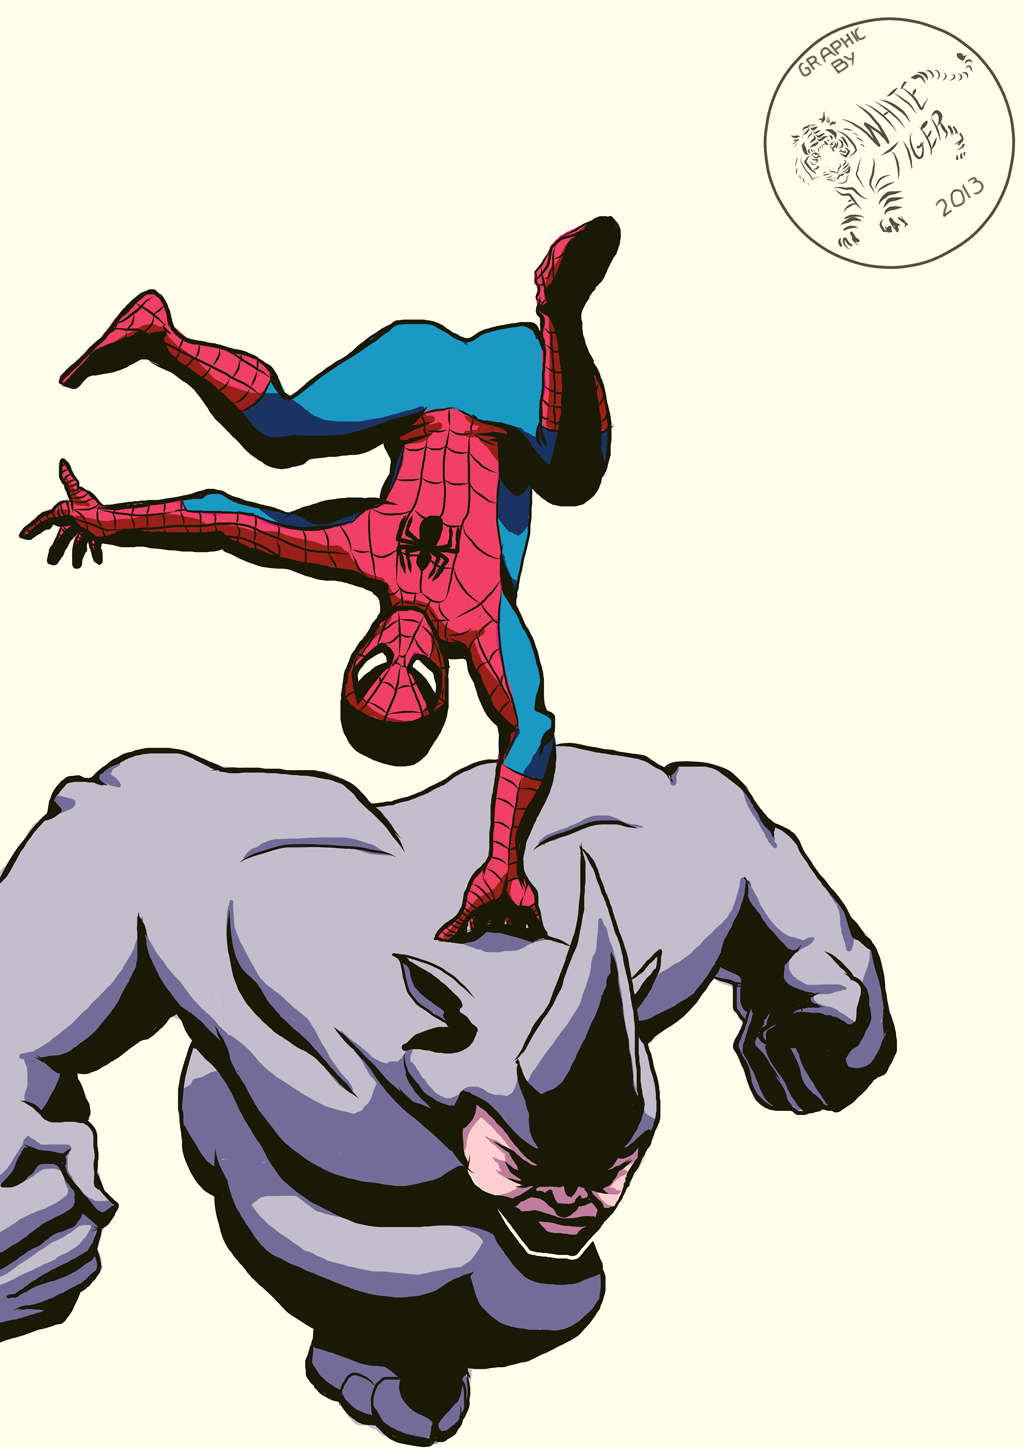 Spider-Man vs The Rhino